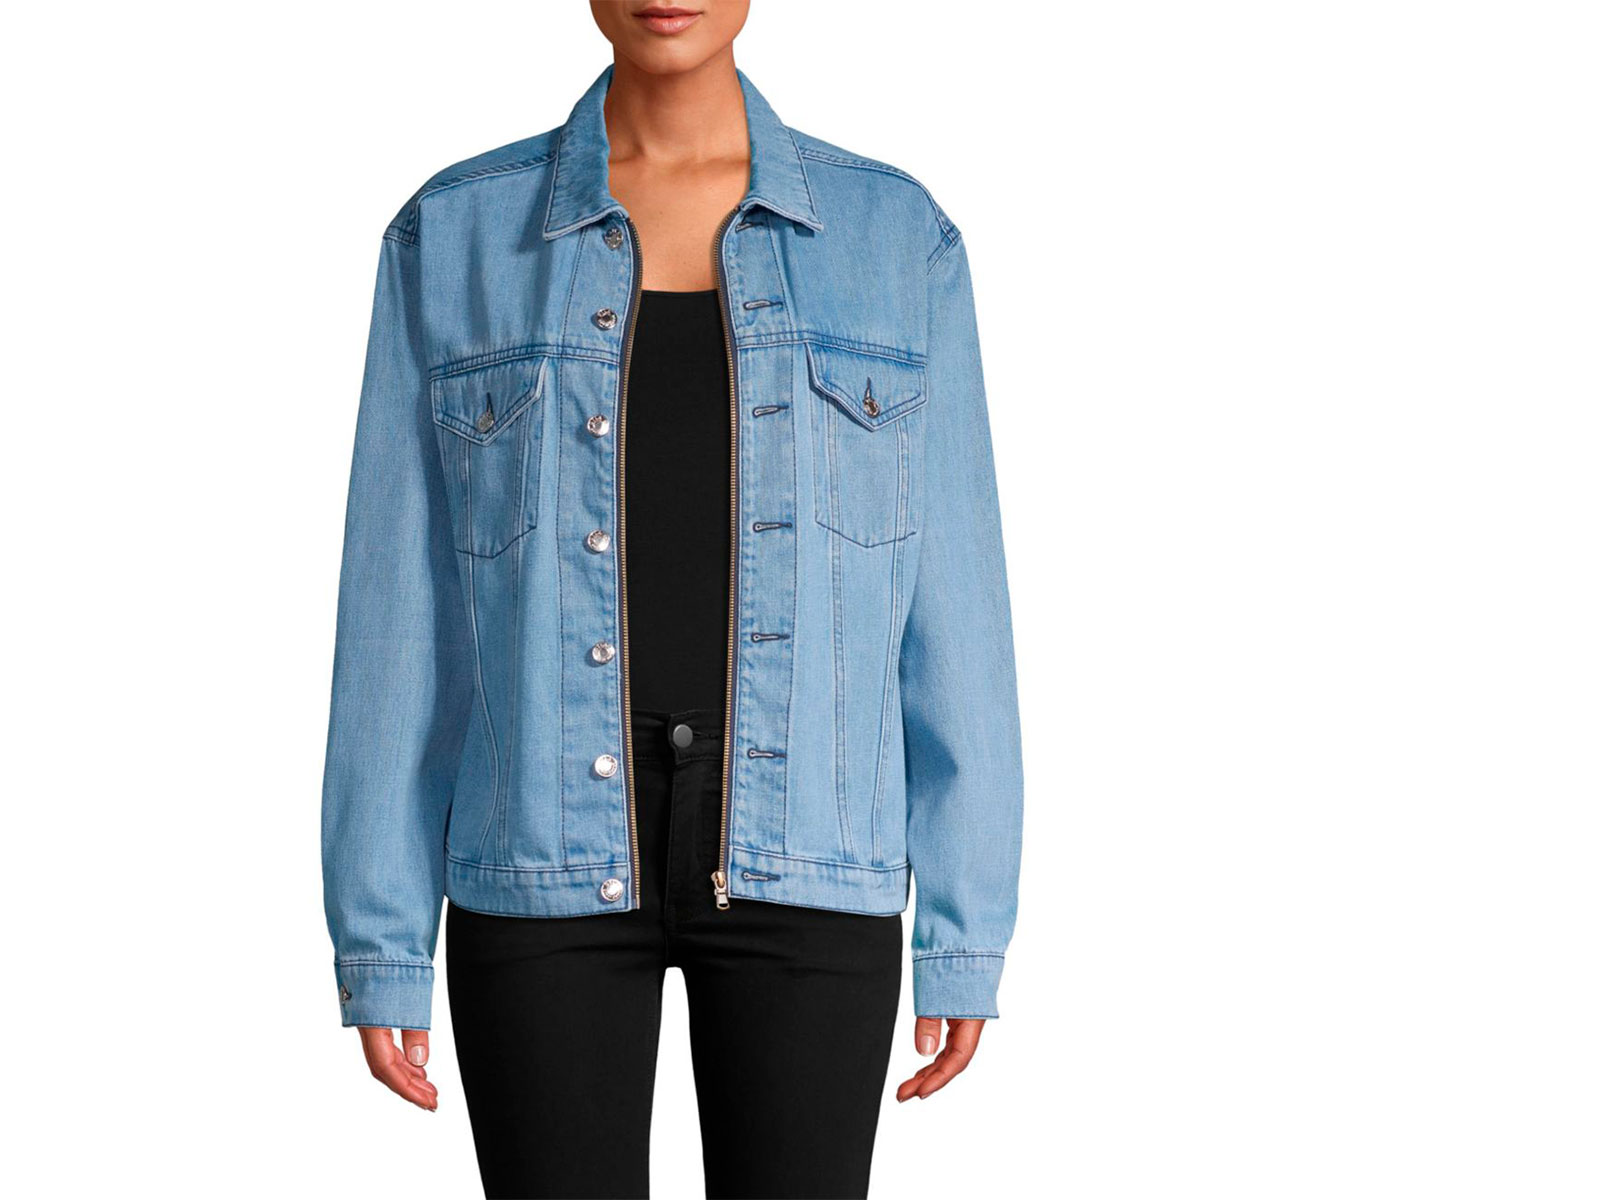 overized denim jacket with silver buttons